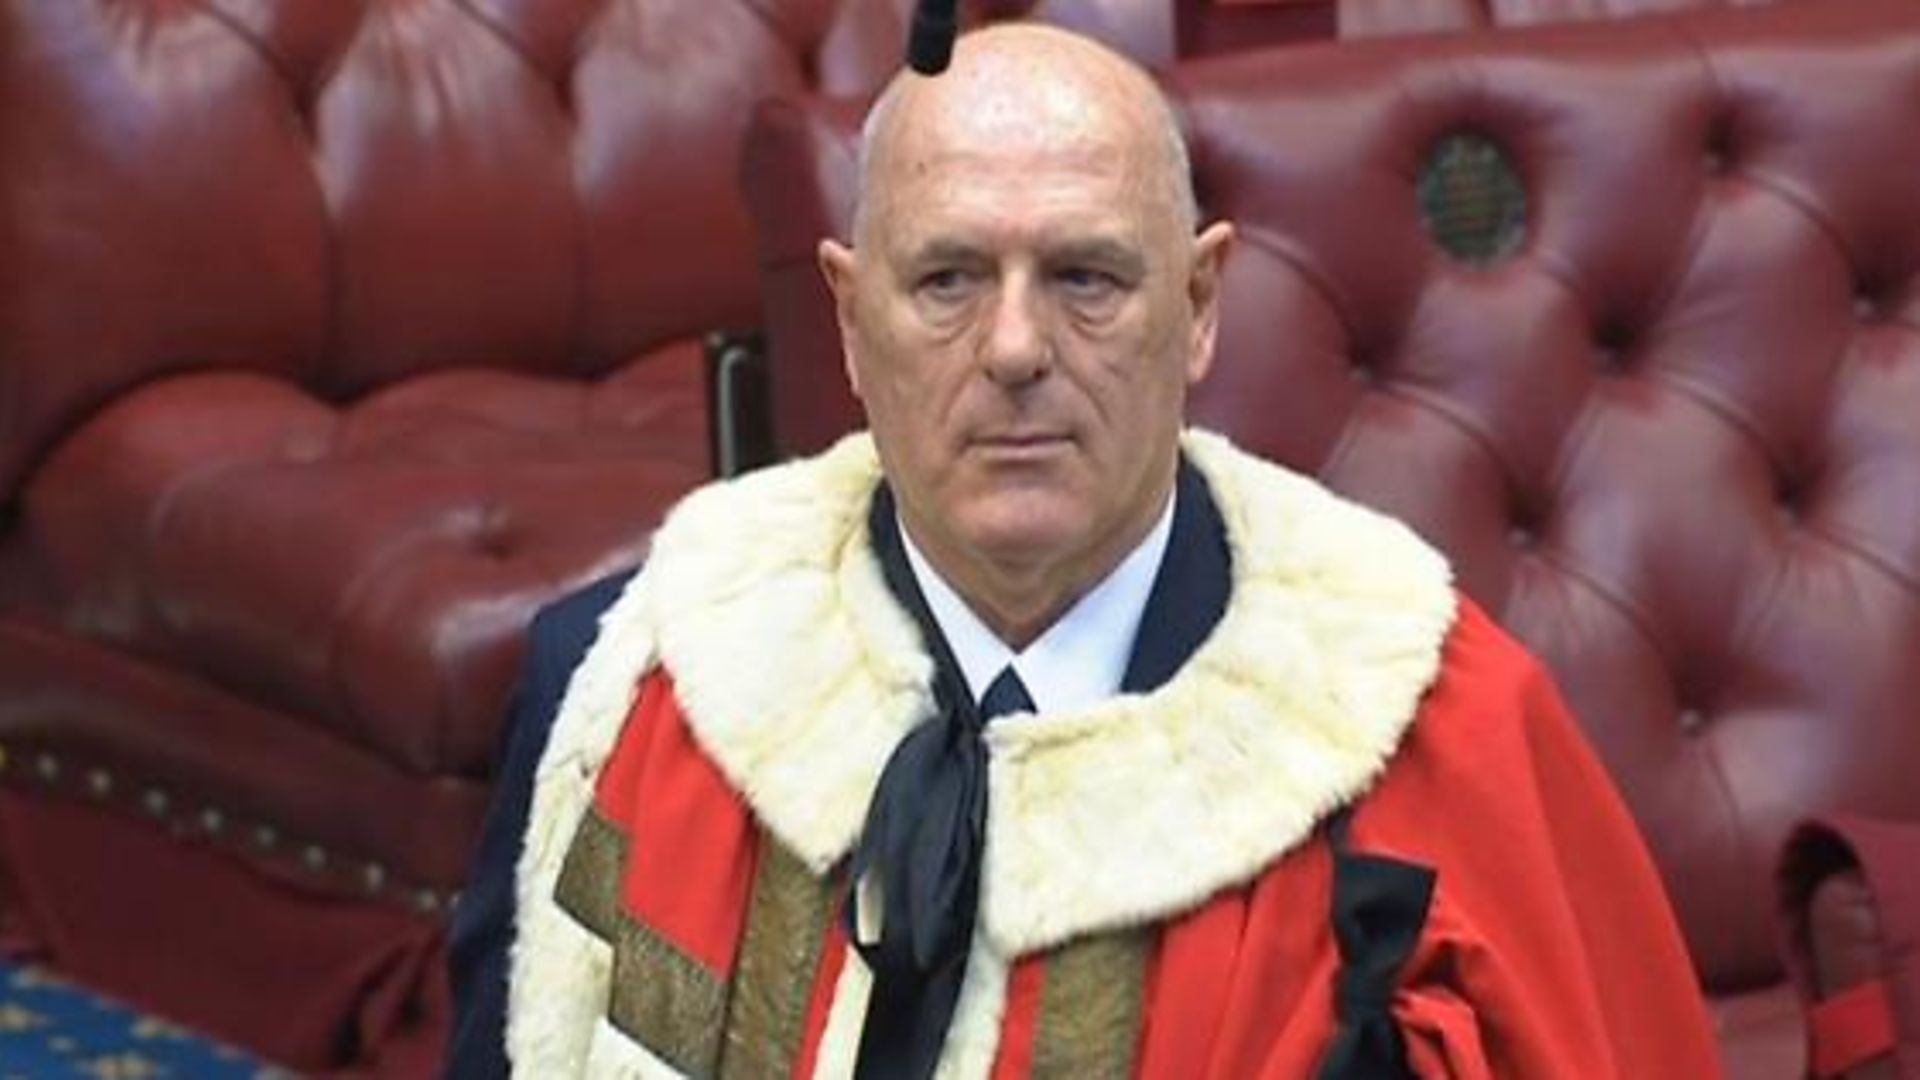 Peter Cruddas in the House of Lords - Credit: Parliament Live